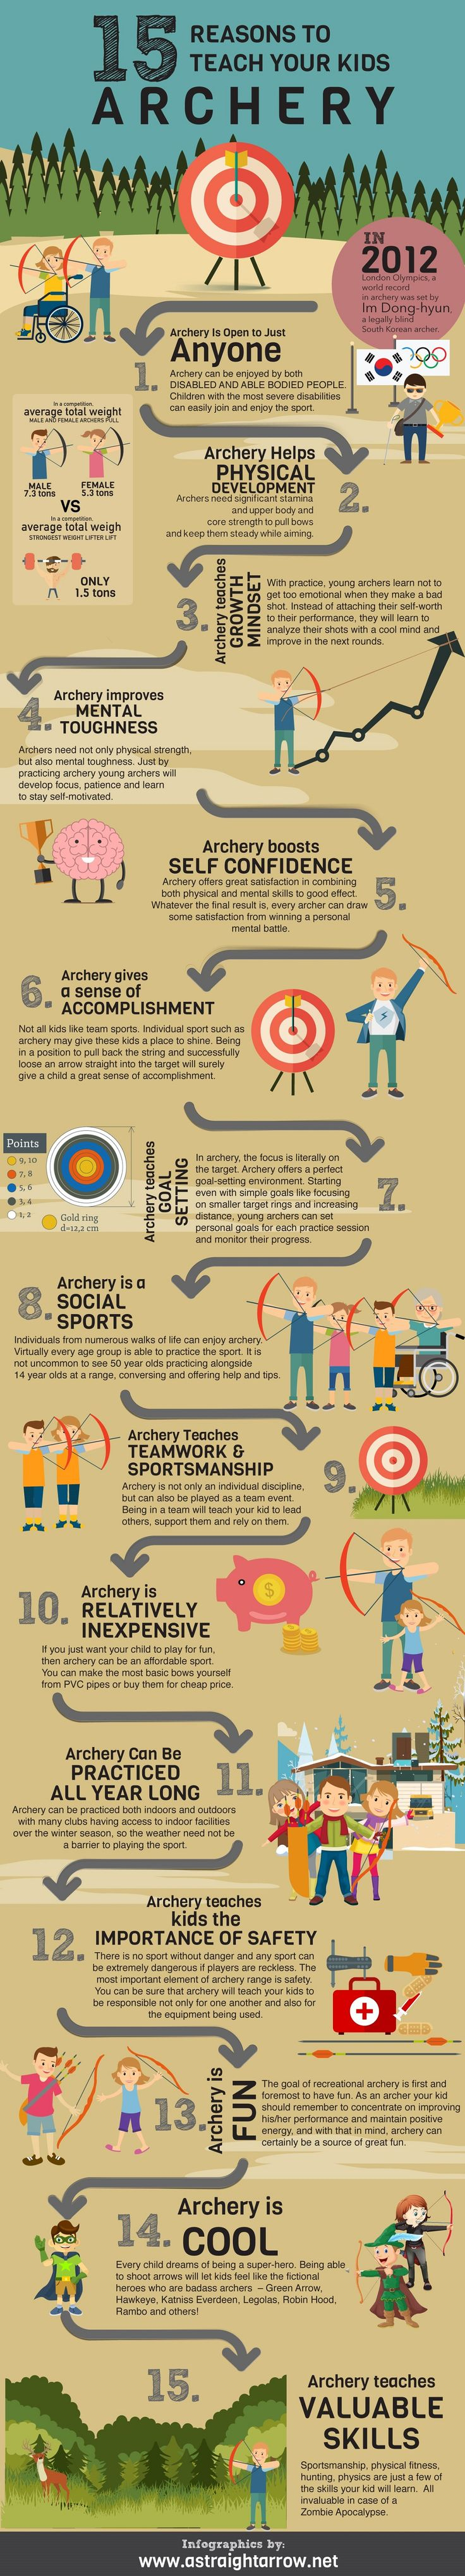 Do you think that your kid needs a bit of healthy physical activity? Higher self-confidence? Stronger discipline? If your answer is yes to any of these questions, then archery lessons may be perfect for you. While practicing archery your kid will get to exercise, develop mentally and physically, socialize with diverse group of people, all while having a ton of fun! There are many benefits of getting your kid started with archery from early on.